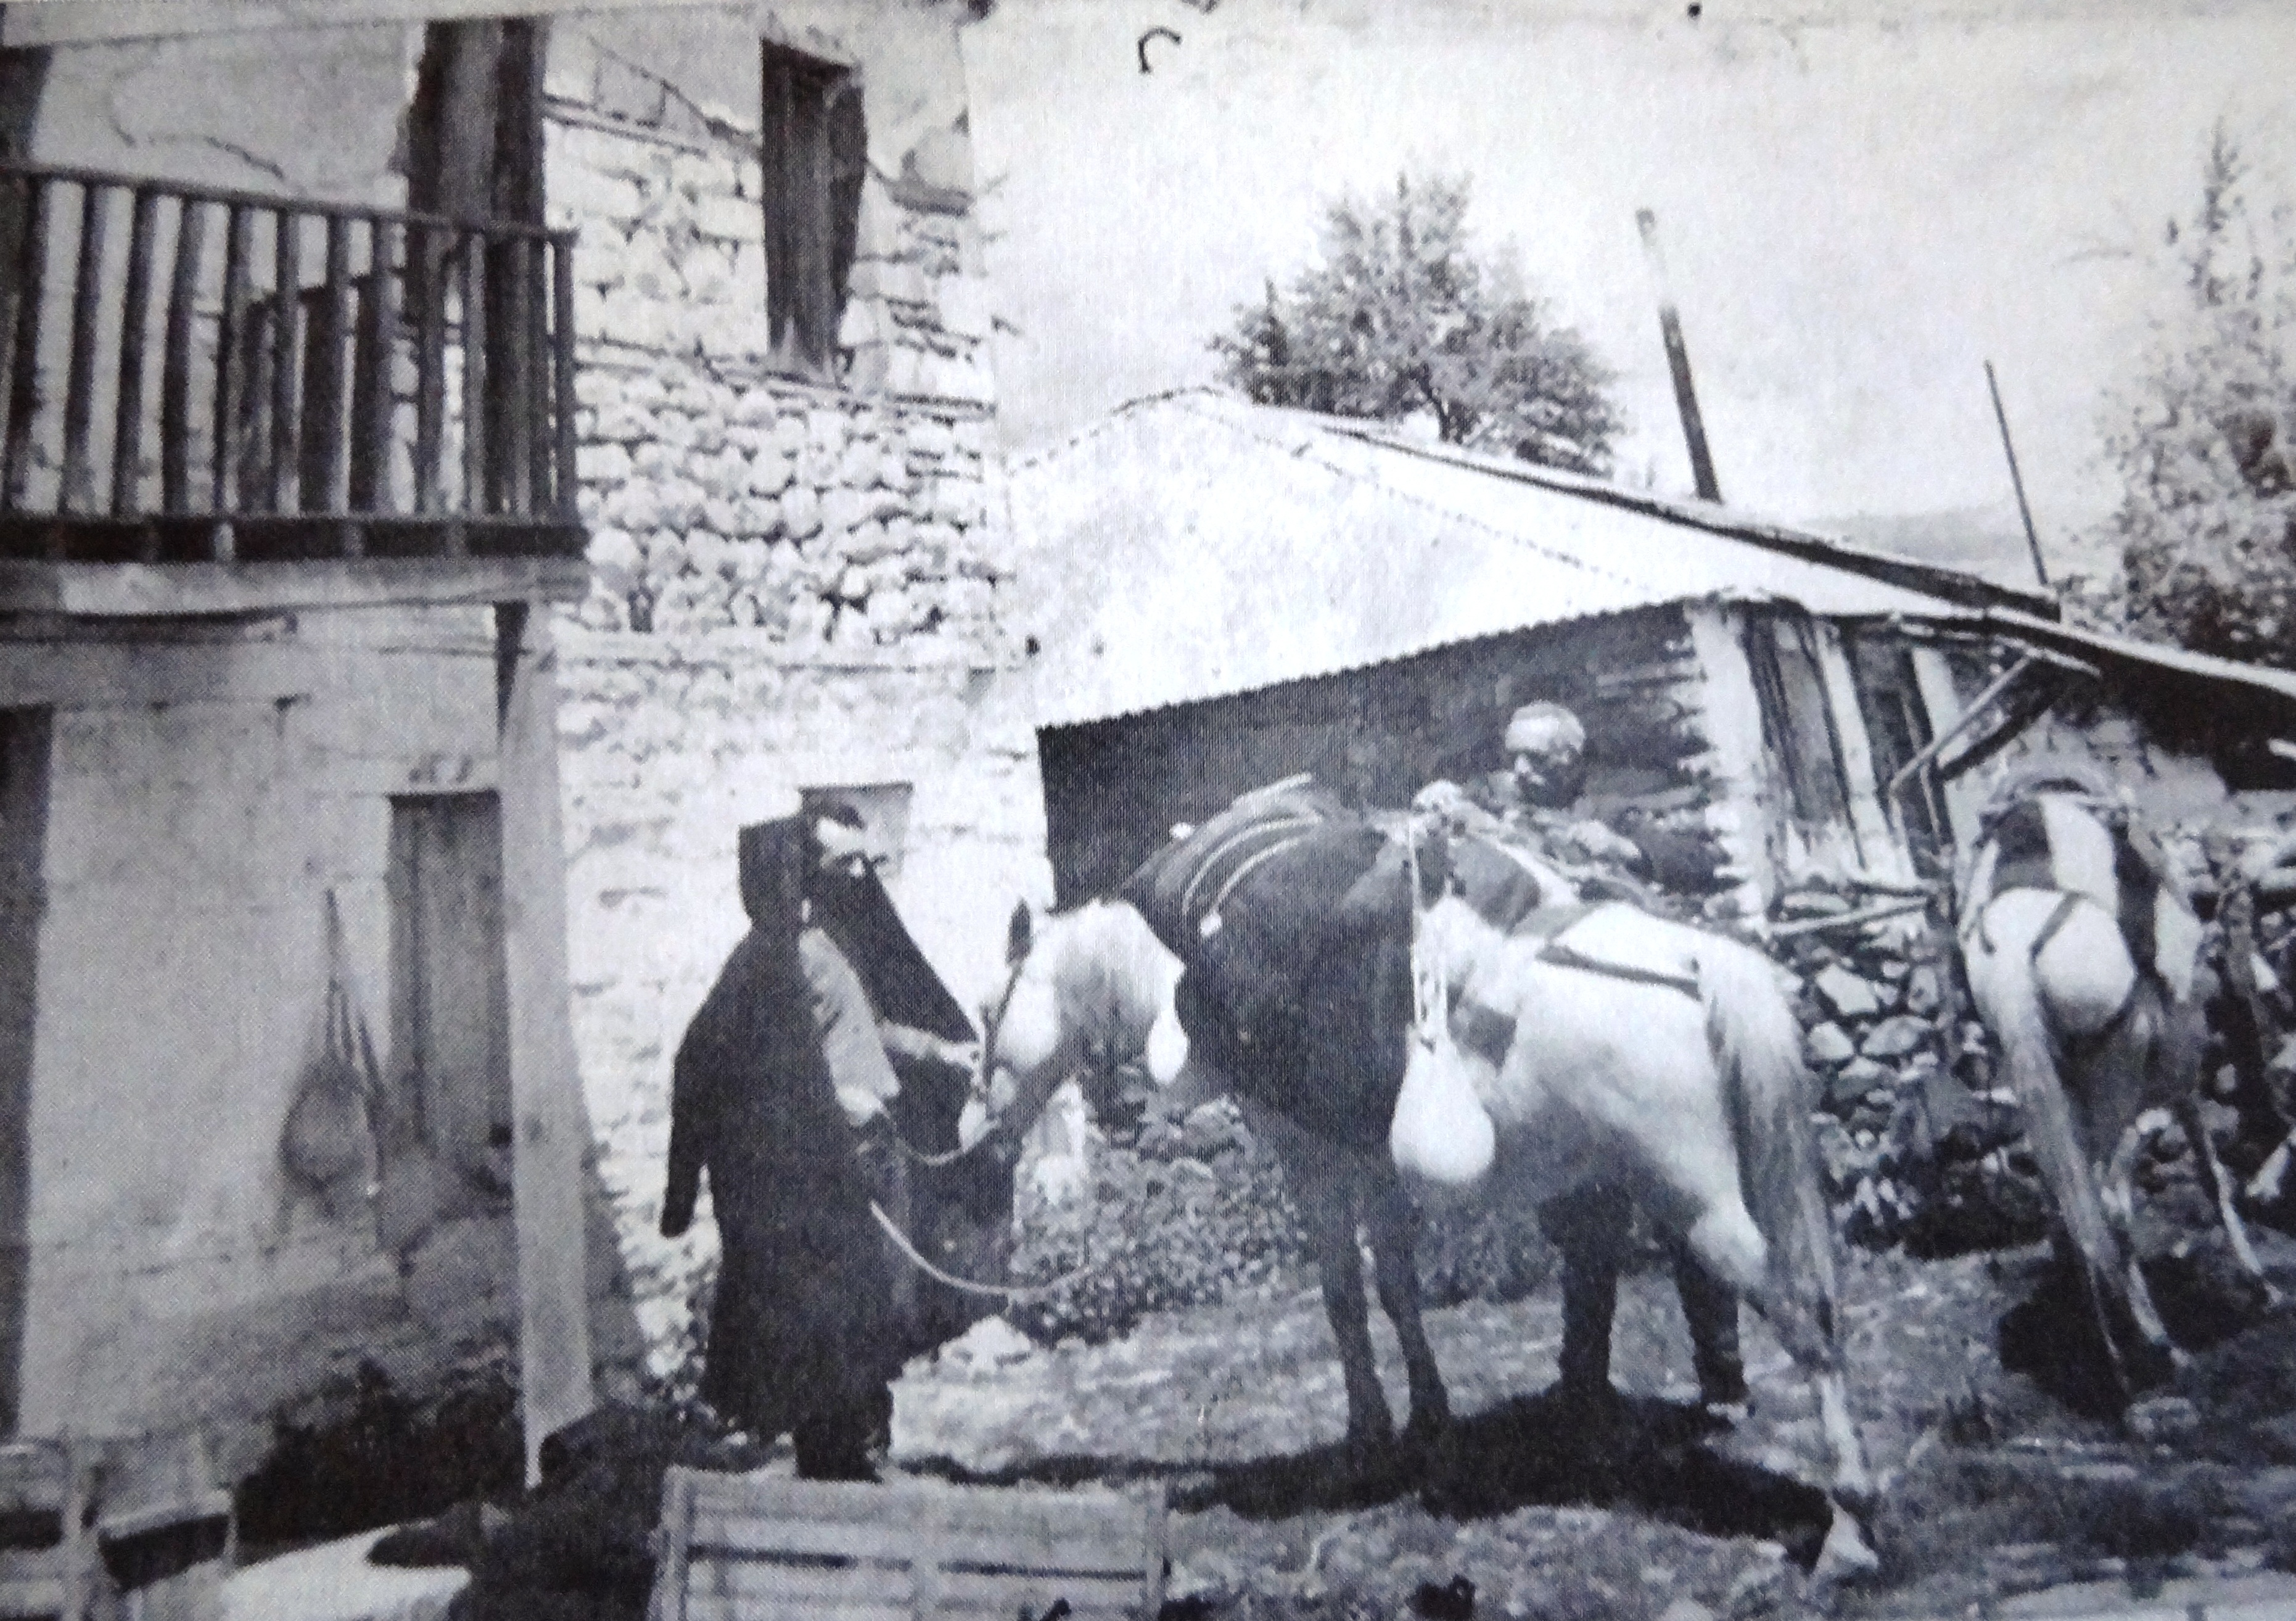 Samarina return from the sheepfold